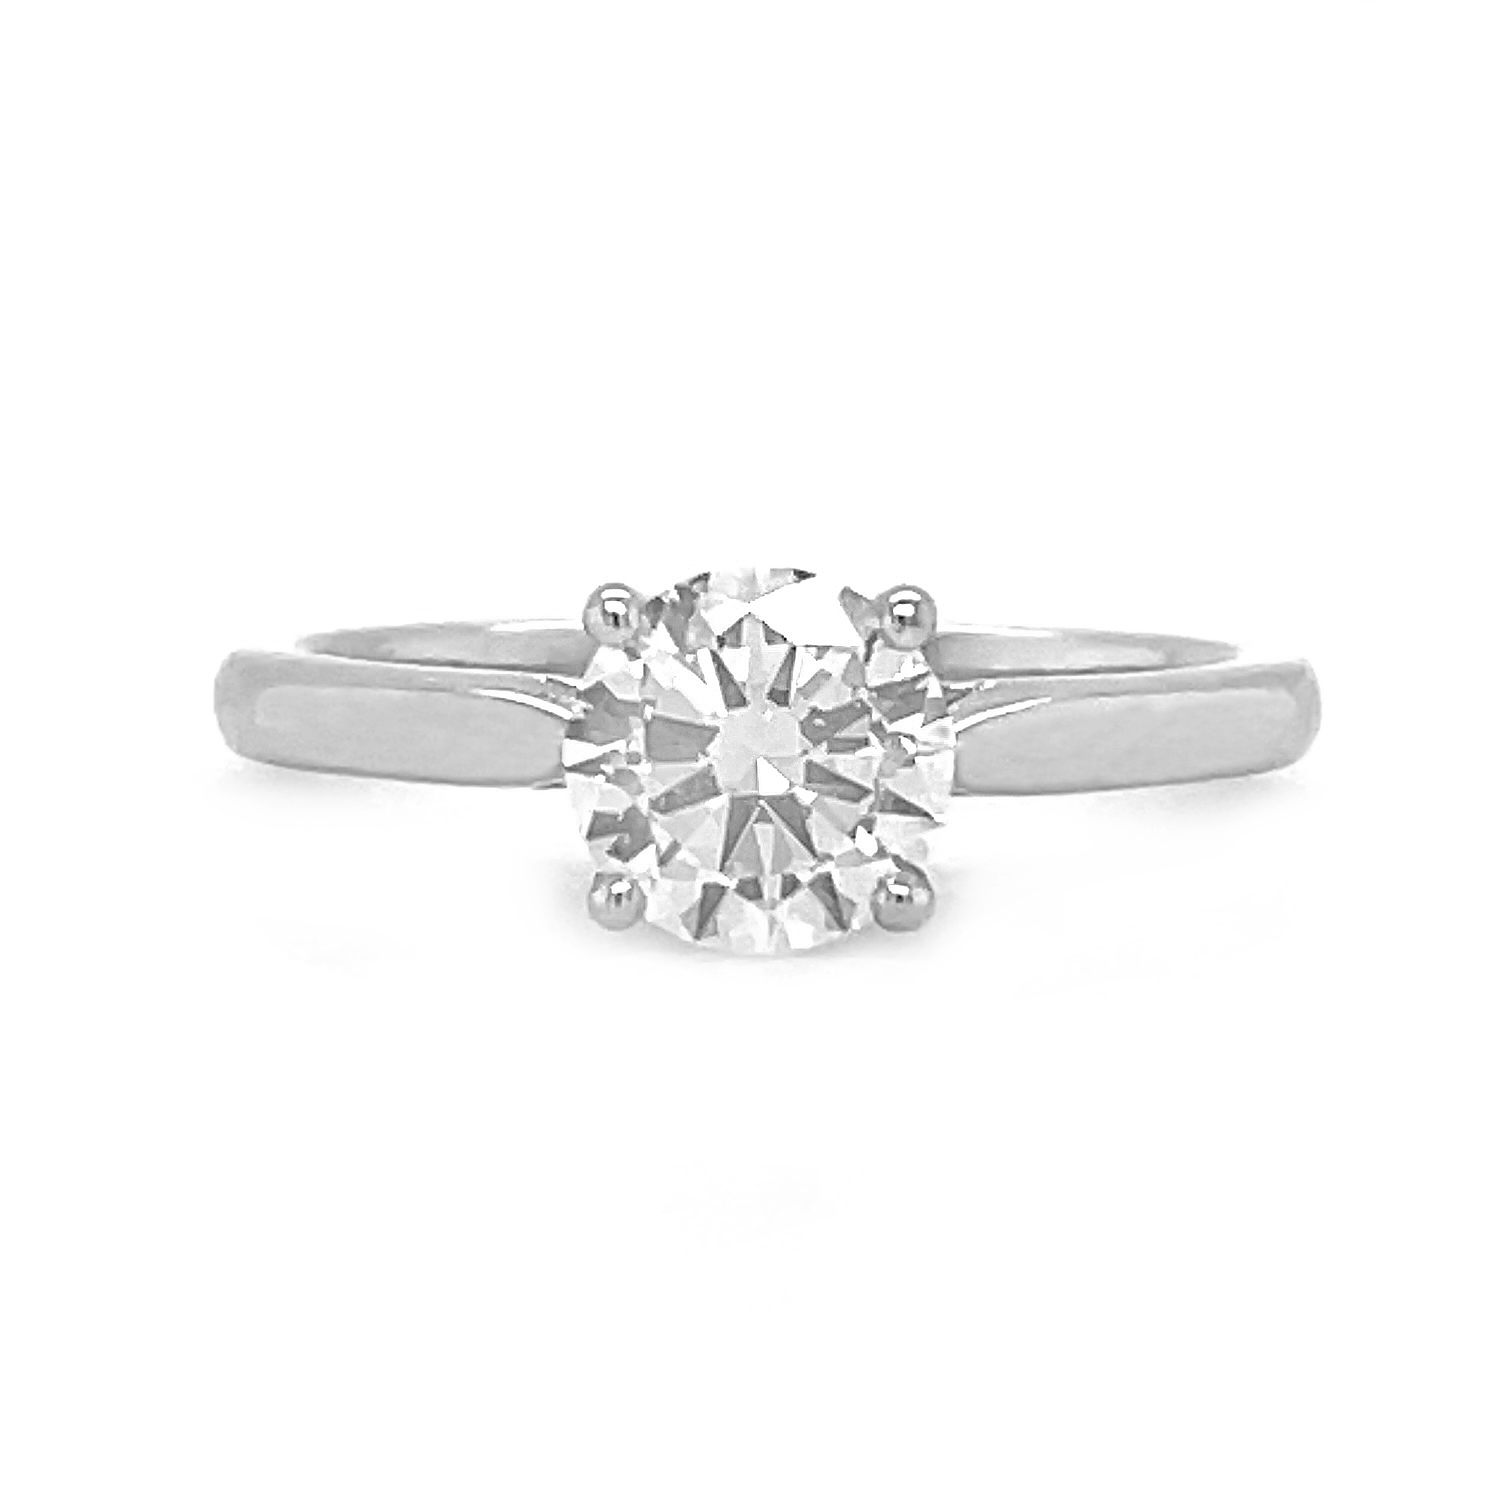 18k White Gold Brilliant Cut 1.01cts Diamond Solitaire Engagement Ring